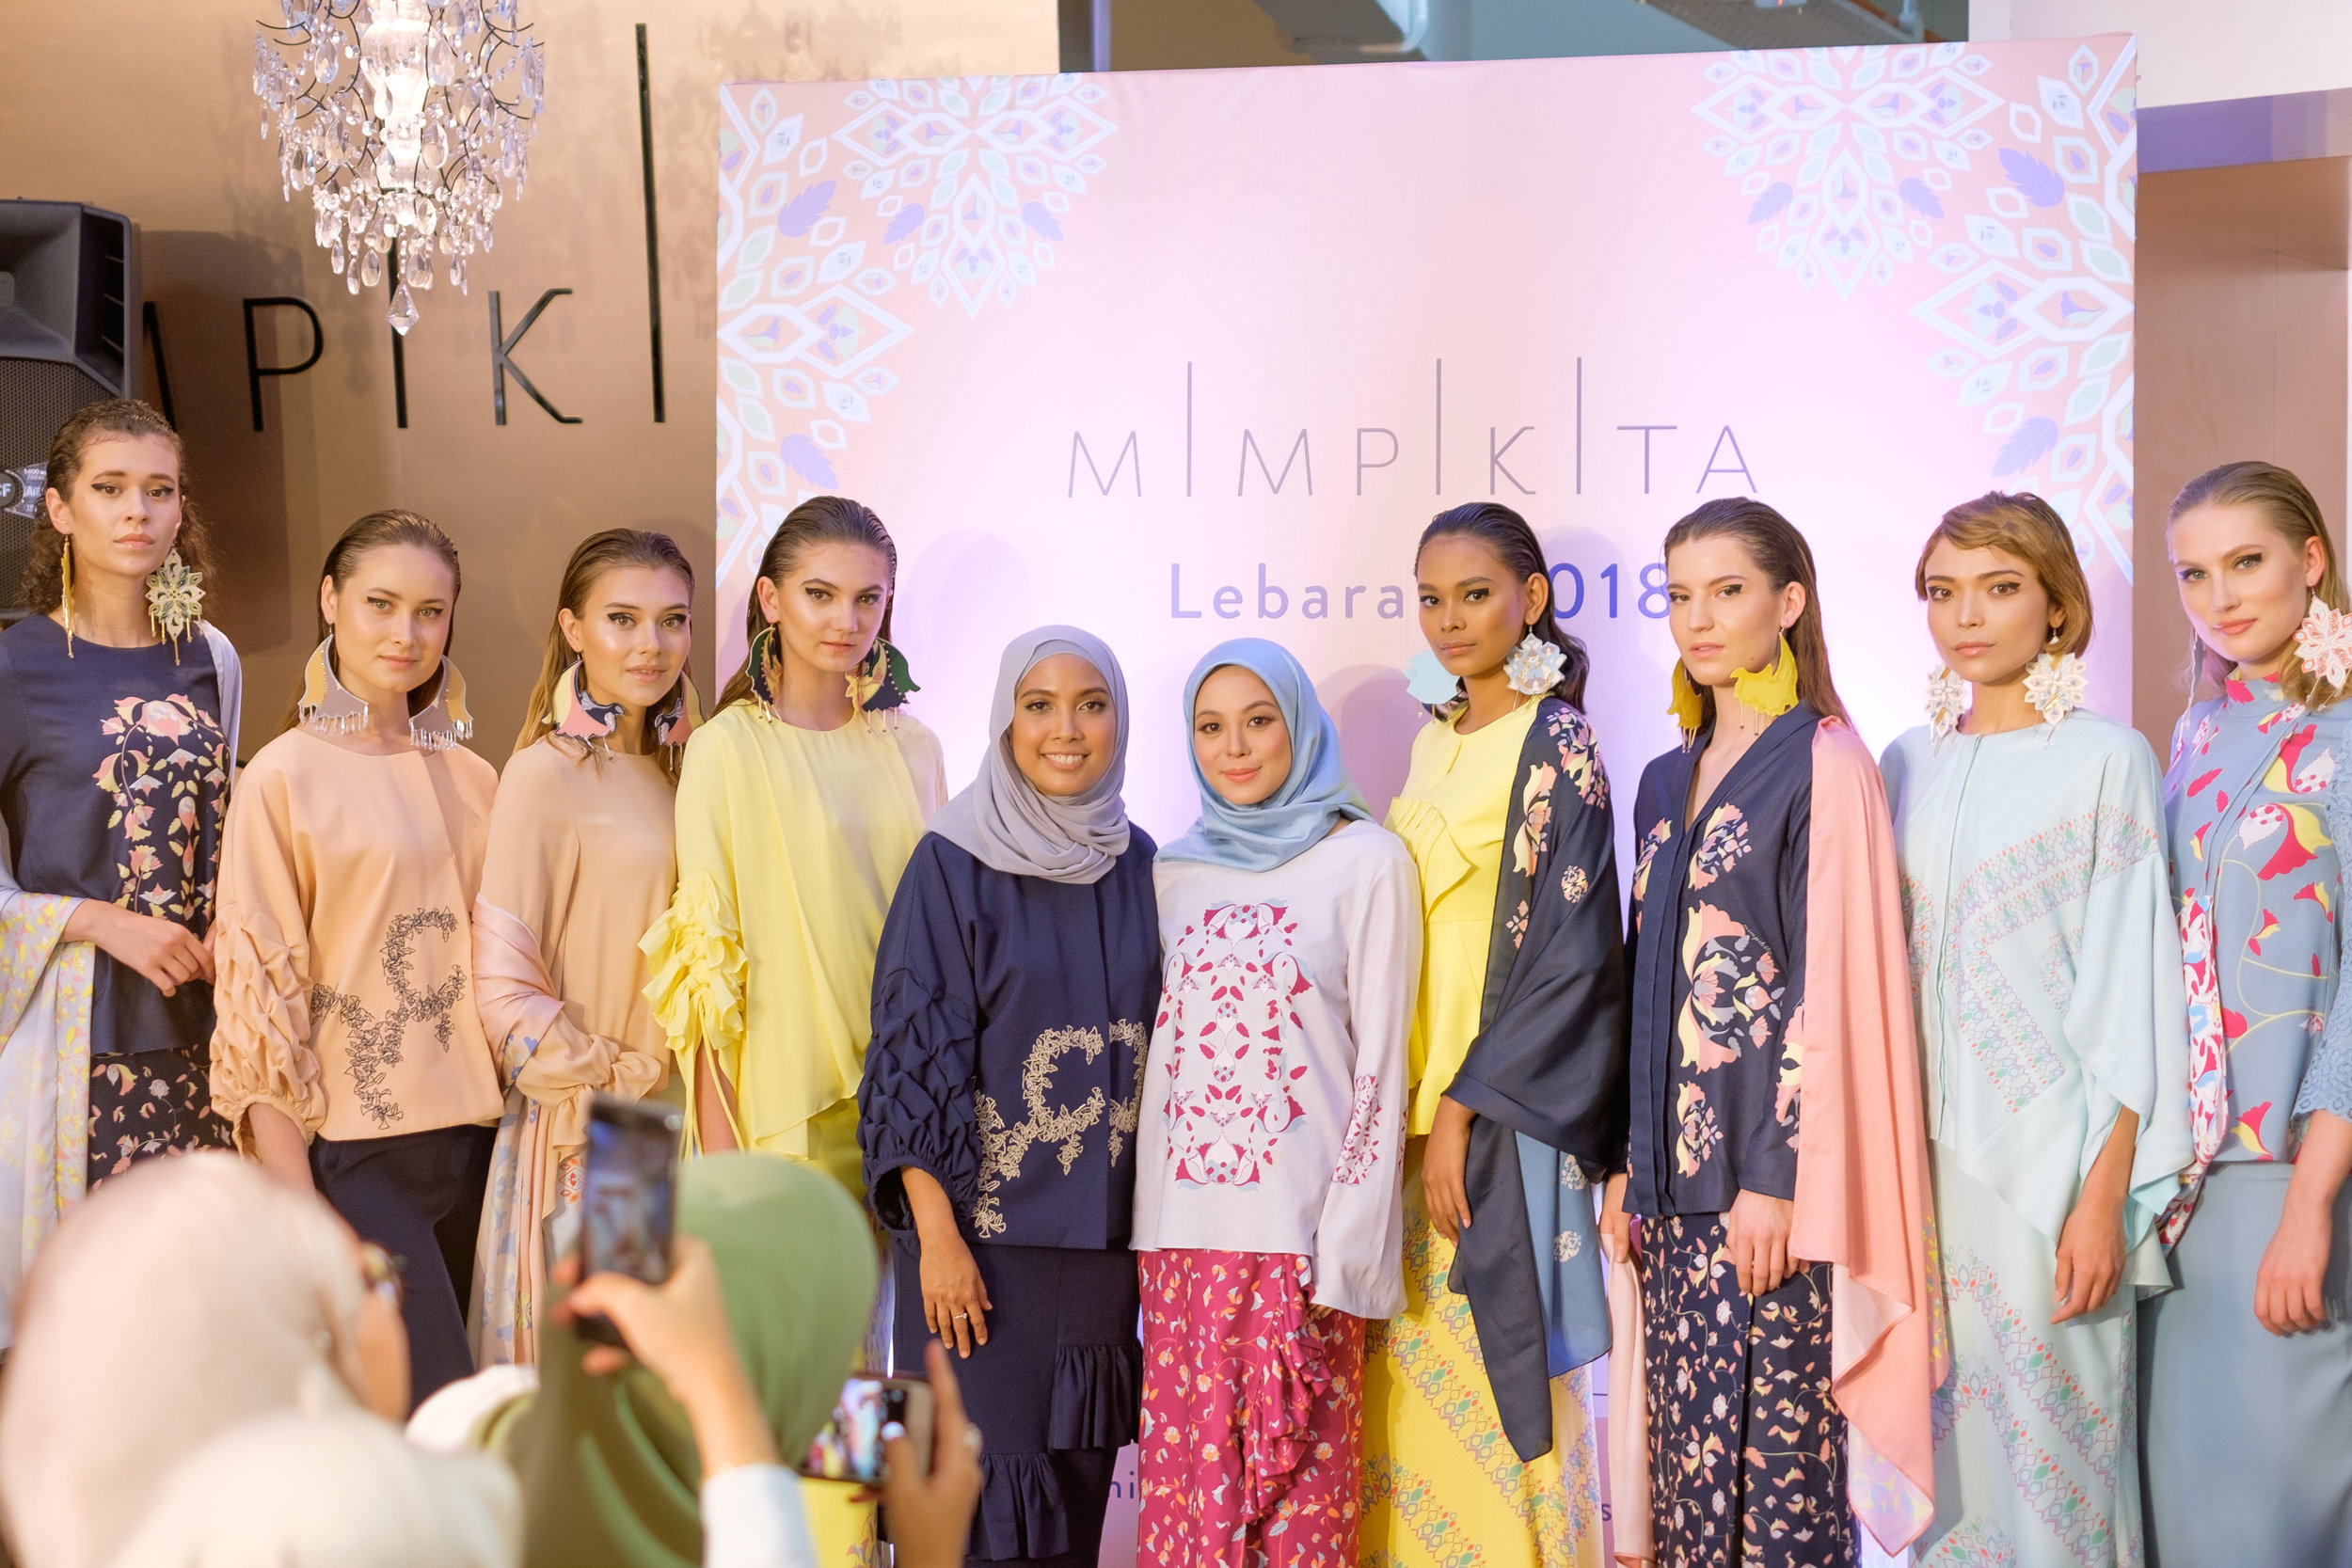 """Mimpikita, Nurul Zulkifli: - """"Its our 10th year anniversary this year and we feel a little nostalgic coming up with this collection as we look back at our little milestones over the years. There are some familiar prints, designs and silhouette which we bring back with a new breath into this year Lebaran"""""""